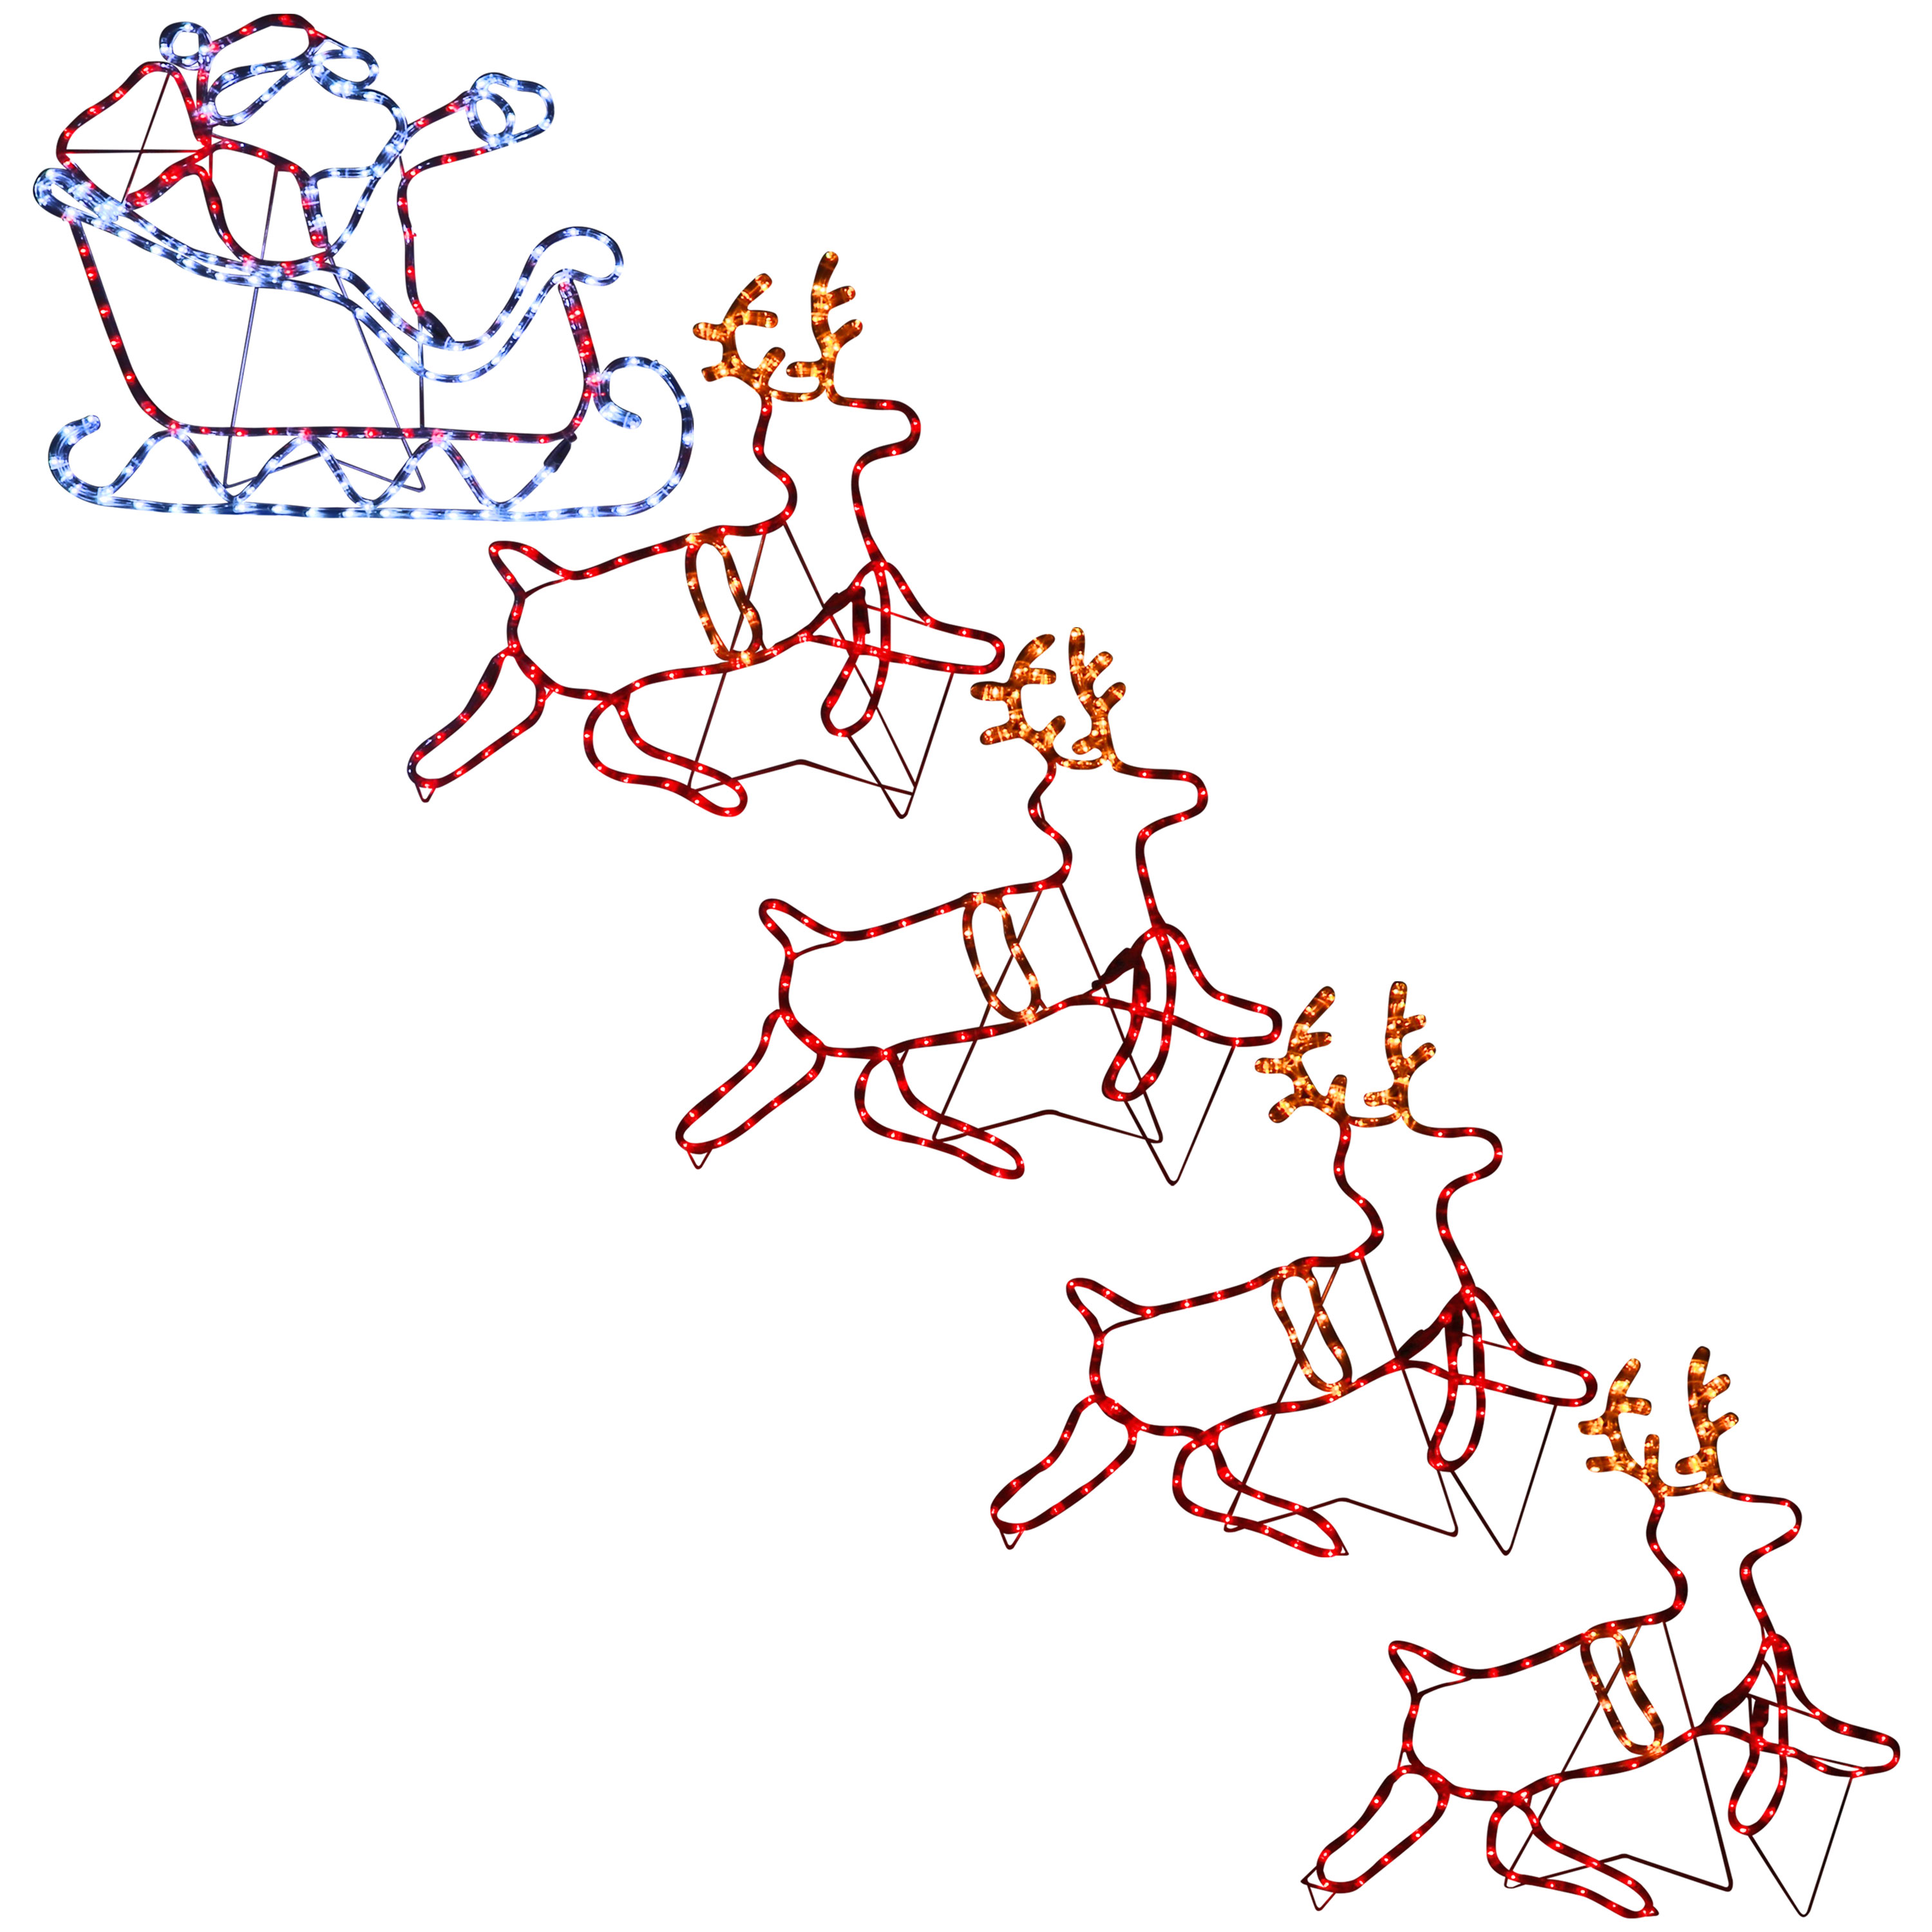 Sunnydaze Outdoor Christmas Light Display Santa on Sleigh with Reindeer, Prelit Holiday Silhouette LED Rope Decoration for Yard & Lawn, 11-Feet Long x 25-Inch Height